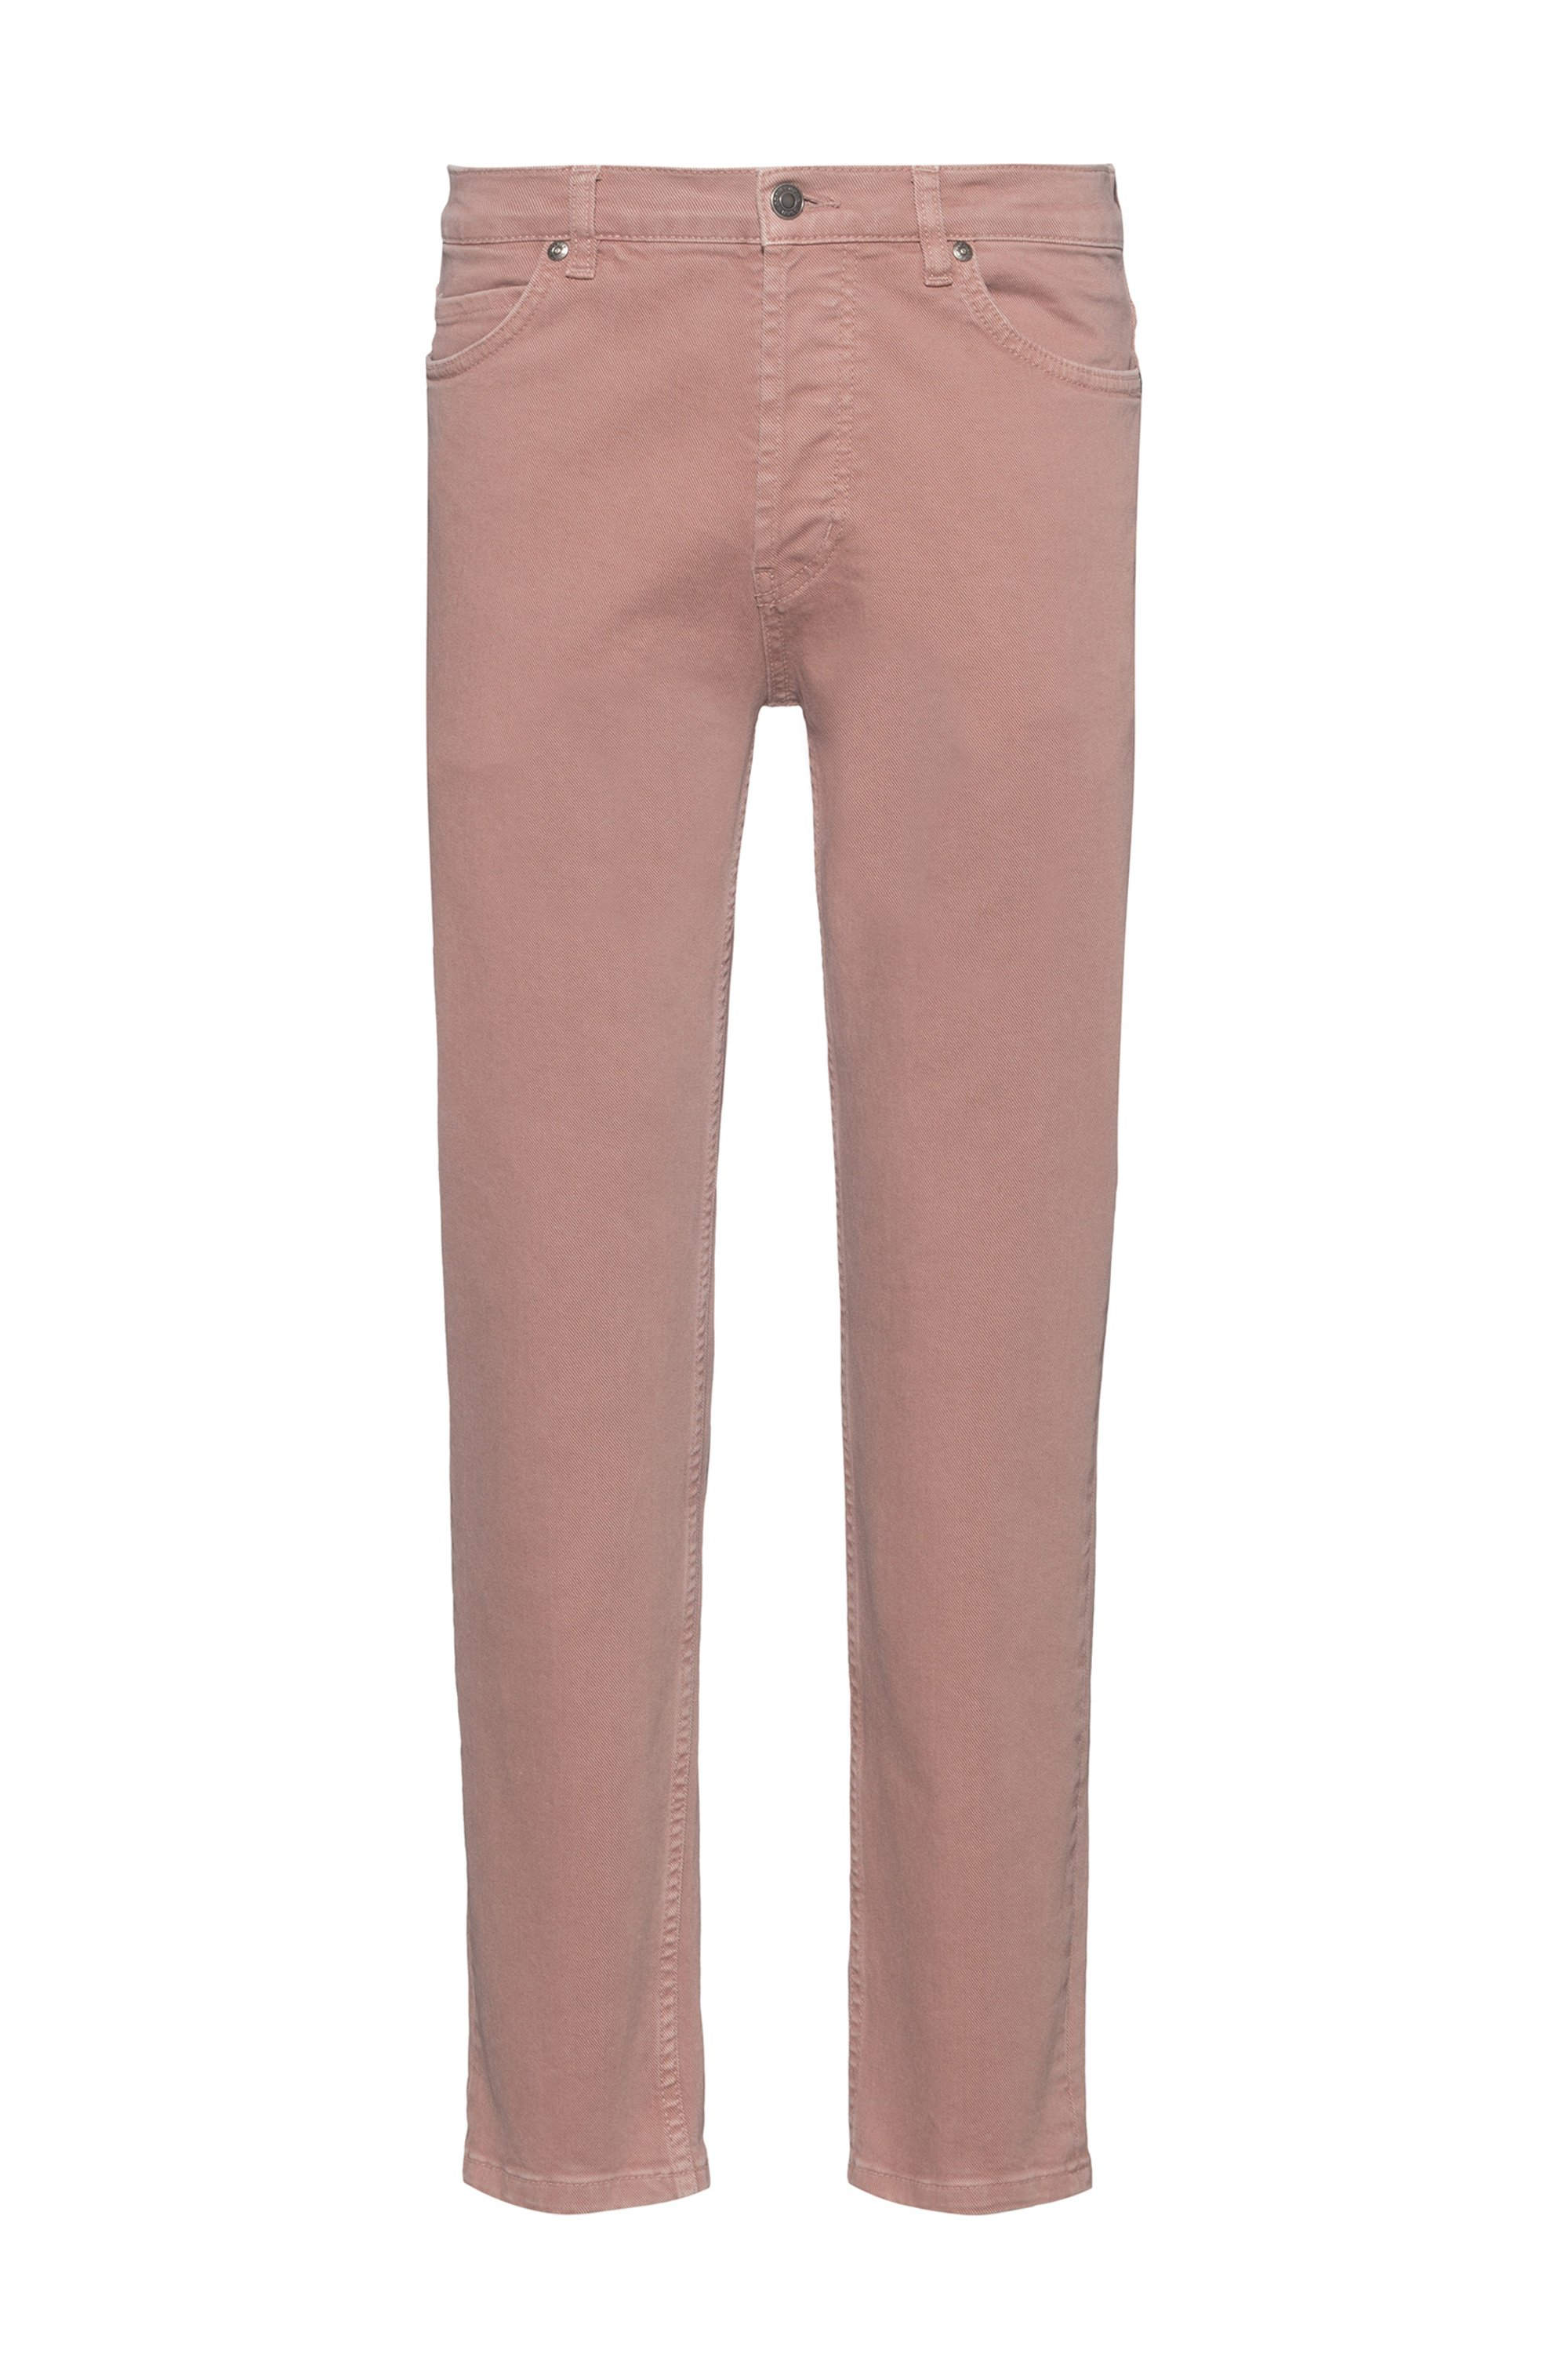 Tapered-fit jeans in stretch denim with organic cotton, light pink